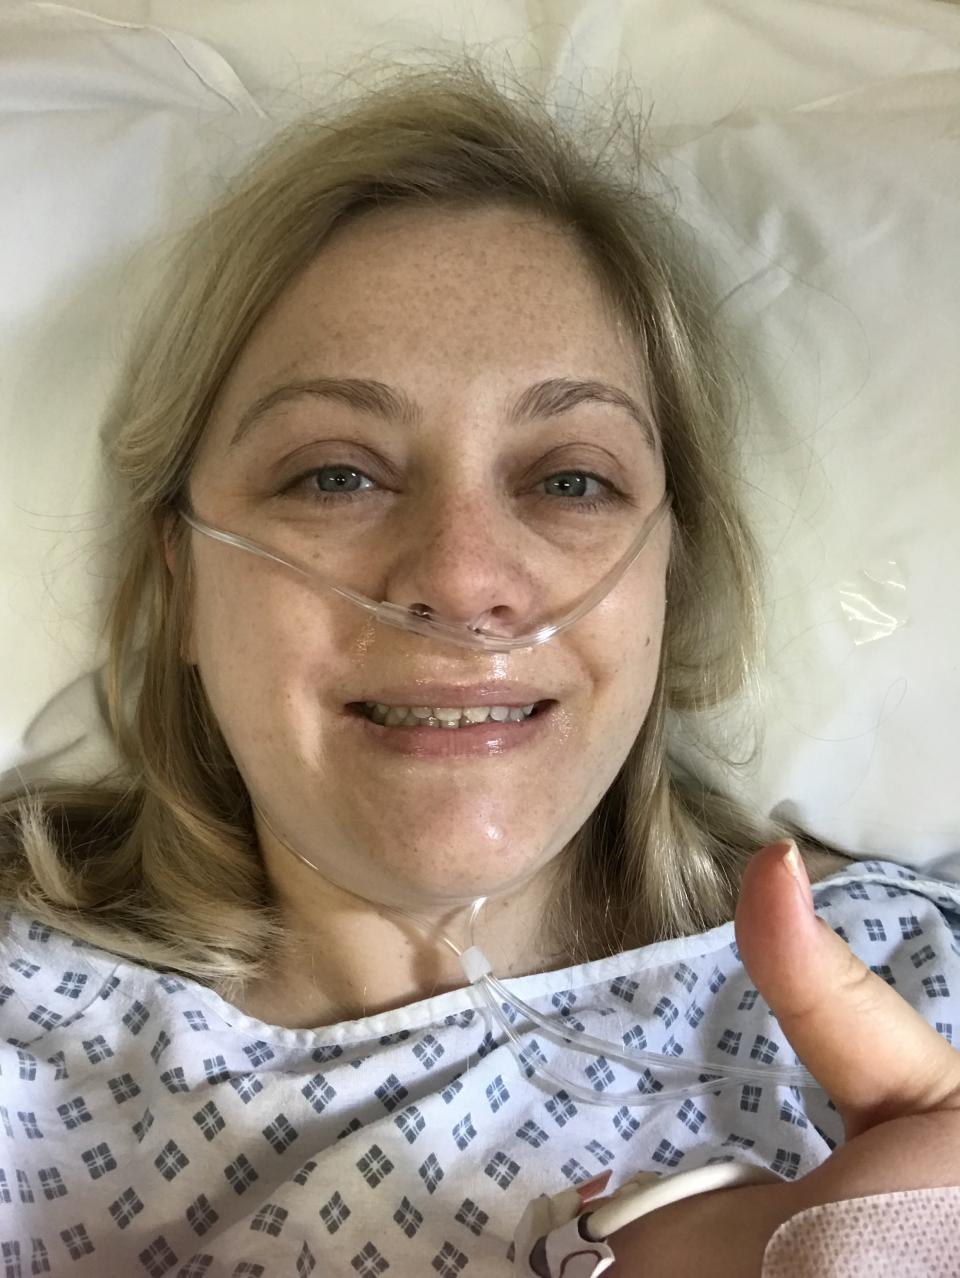 Sara is now running to raise research funds (Sara Hawkins)